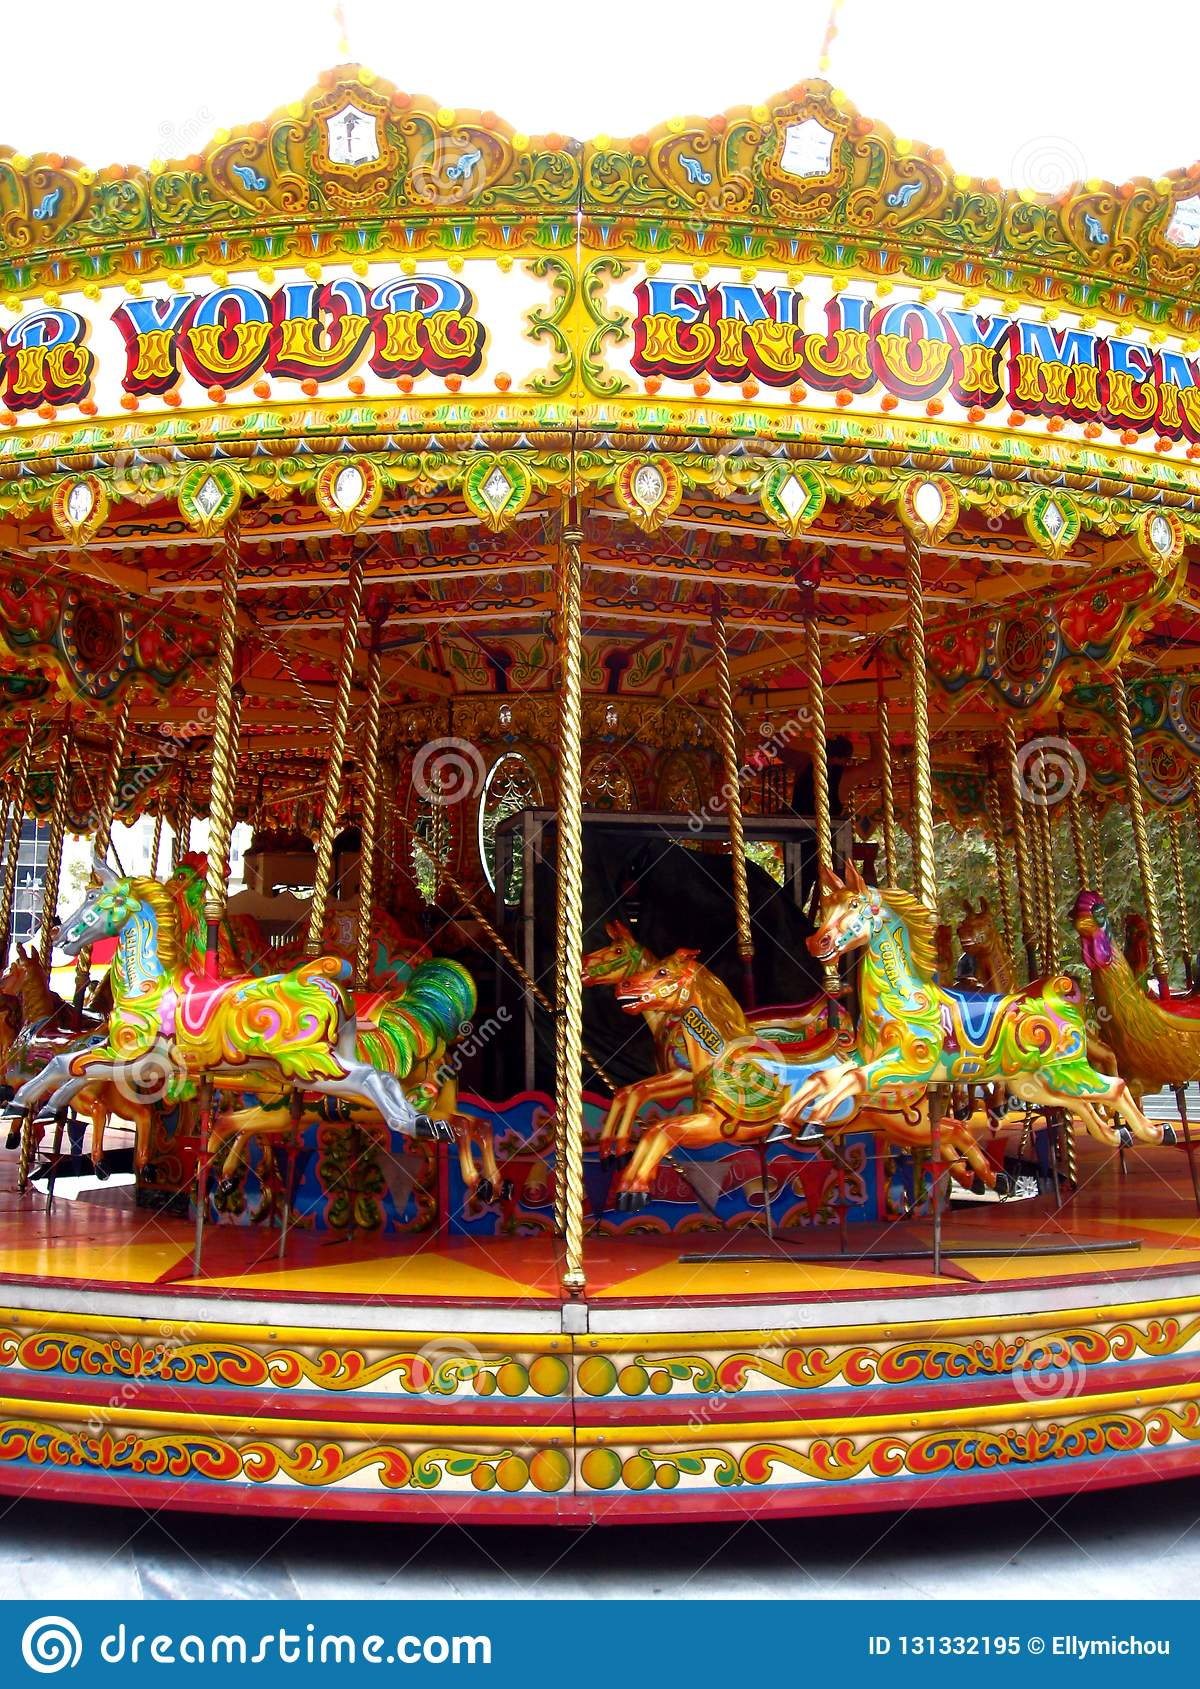 Amazing Horse Carousel In Athens Stock Image - Image of playing